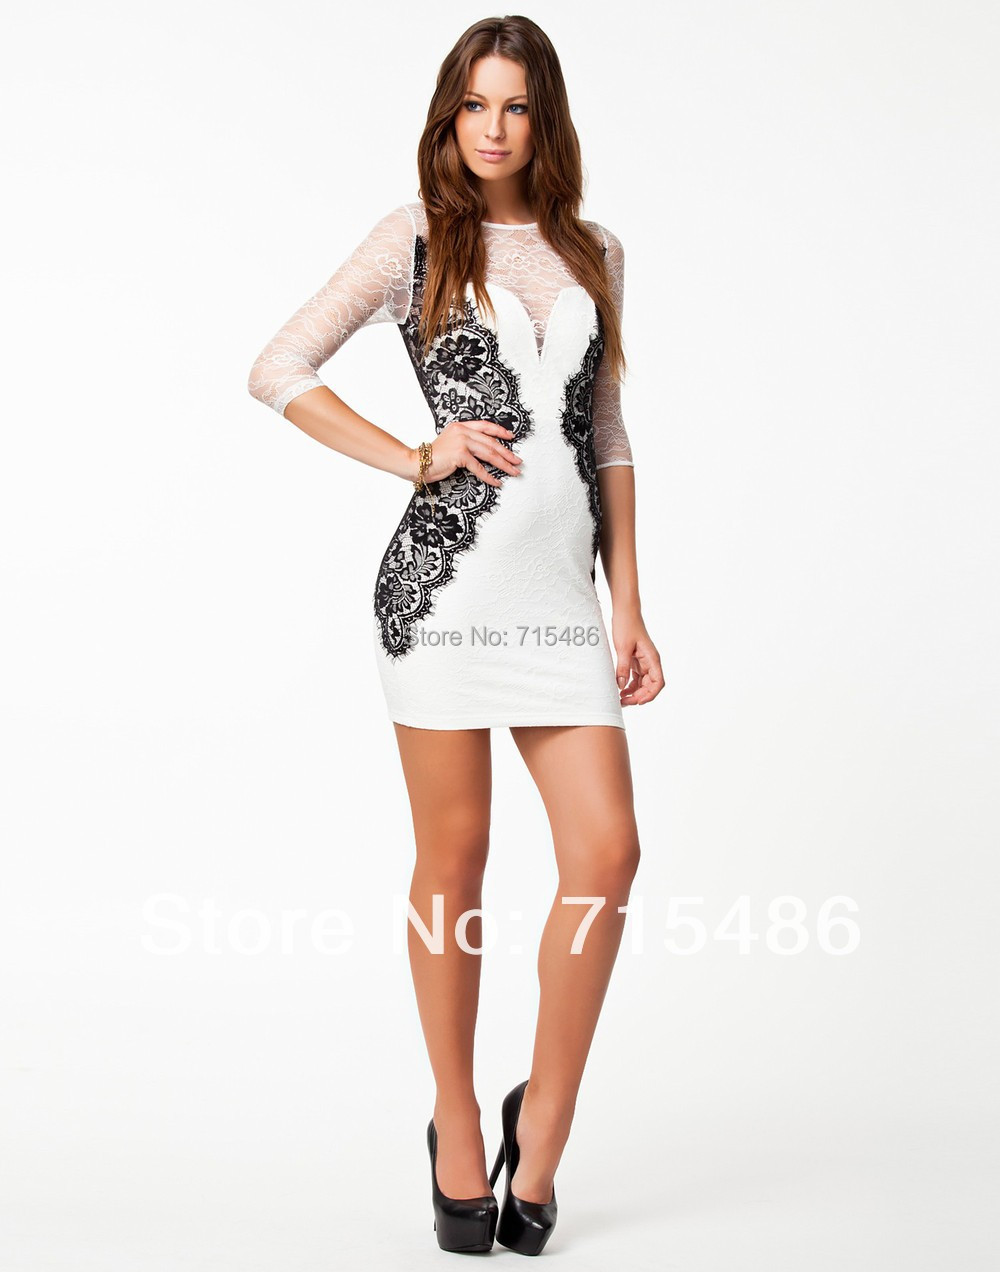 LA17948 Newly Arrival In Stock Women Back Zipper Casual O-Neck Lace Patchwork Vintage Dress Spring Lace Elegant Bodycon Dress